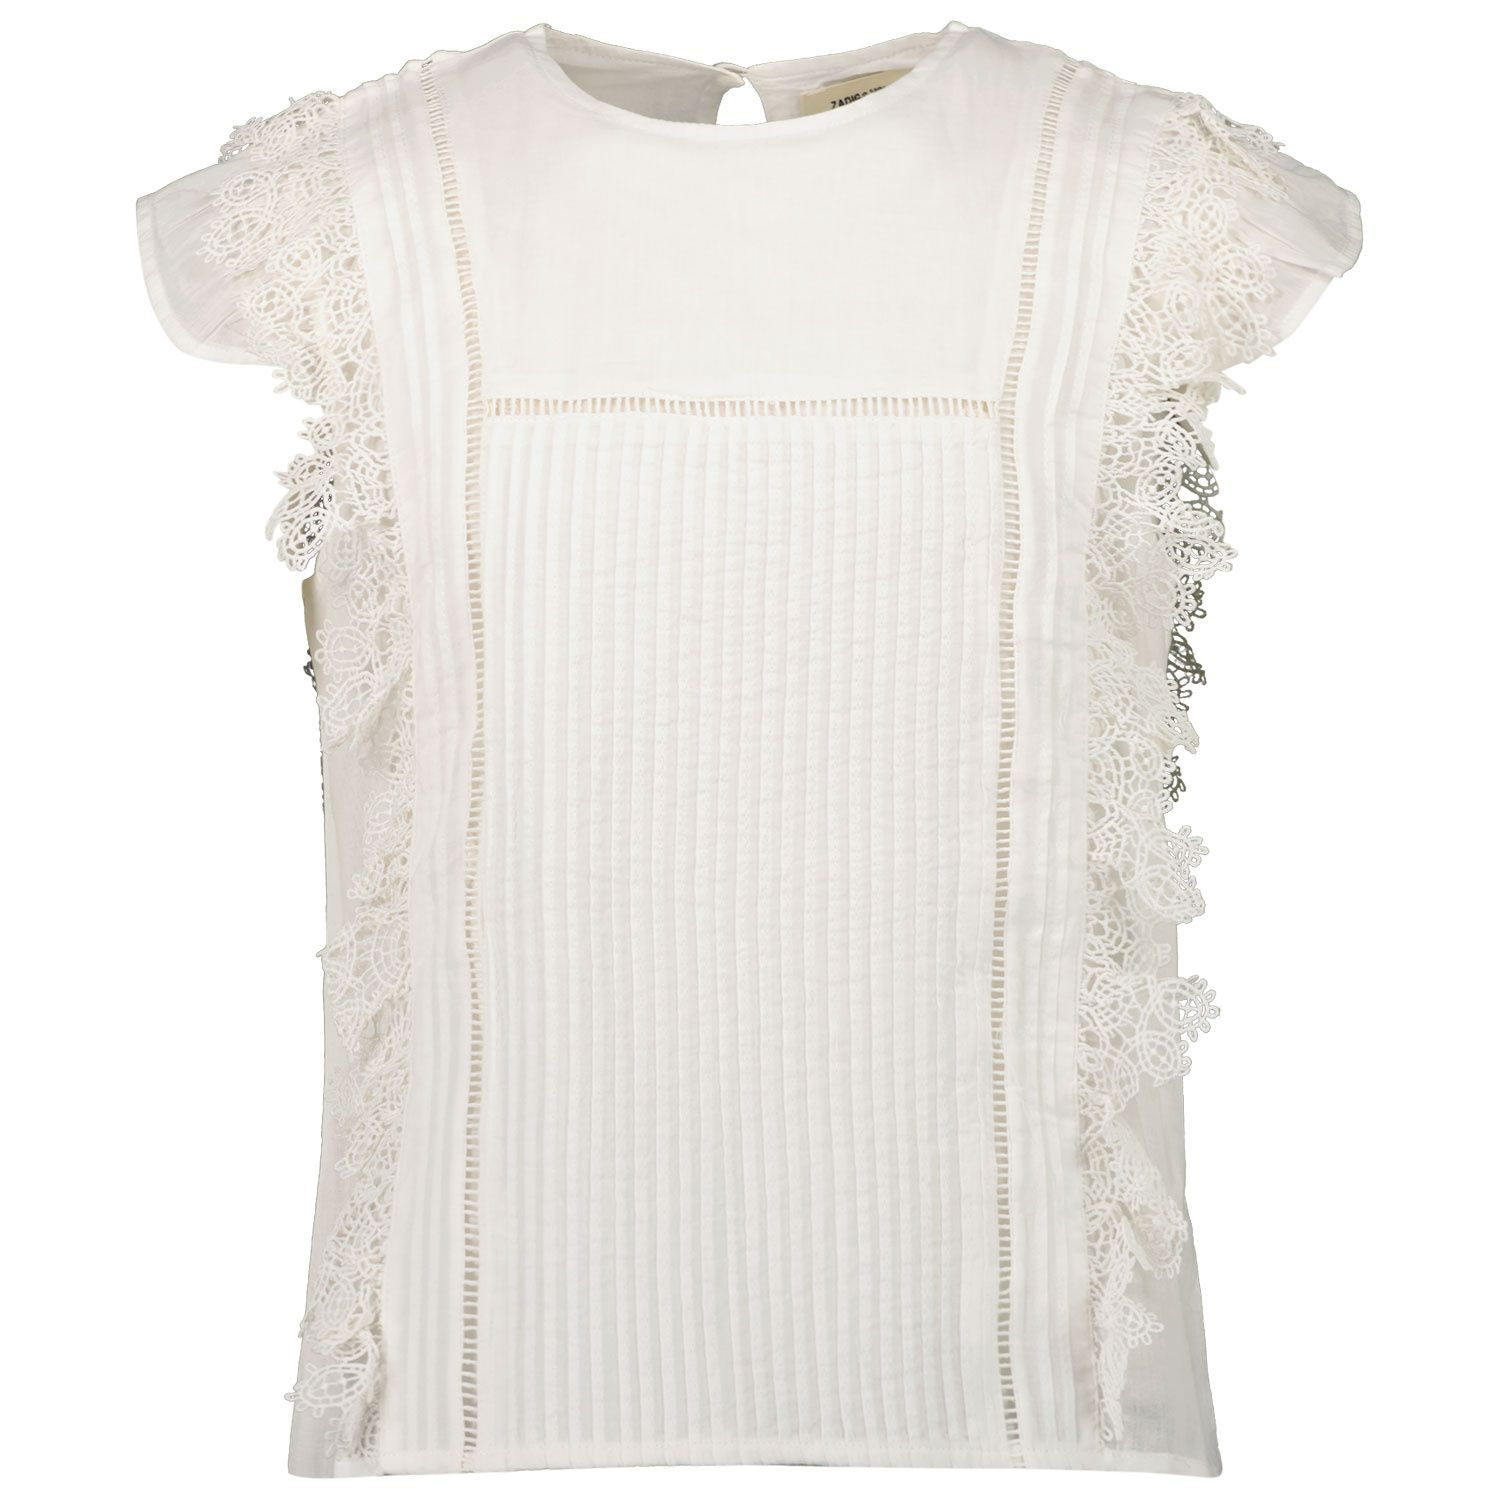 Picture of Zadig & Voltaire X15261 kids t-shirt off white